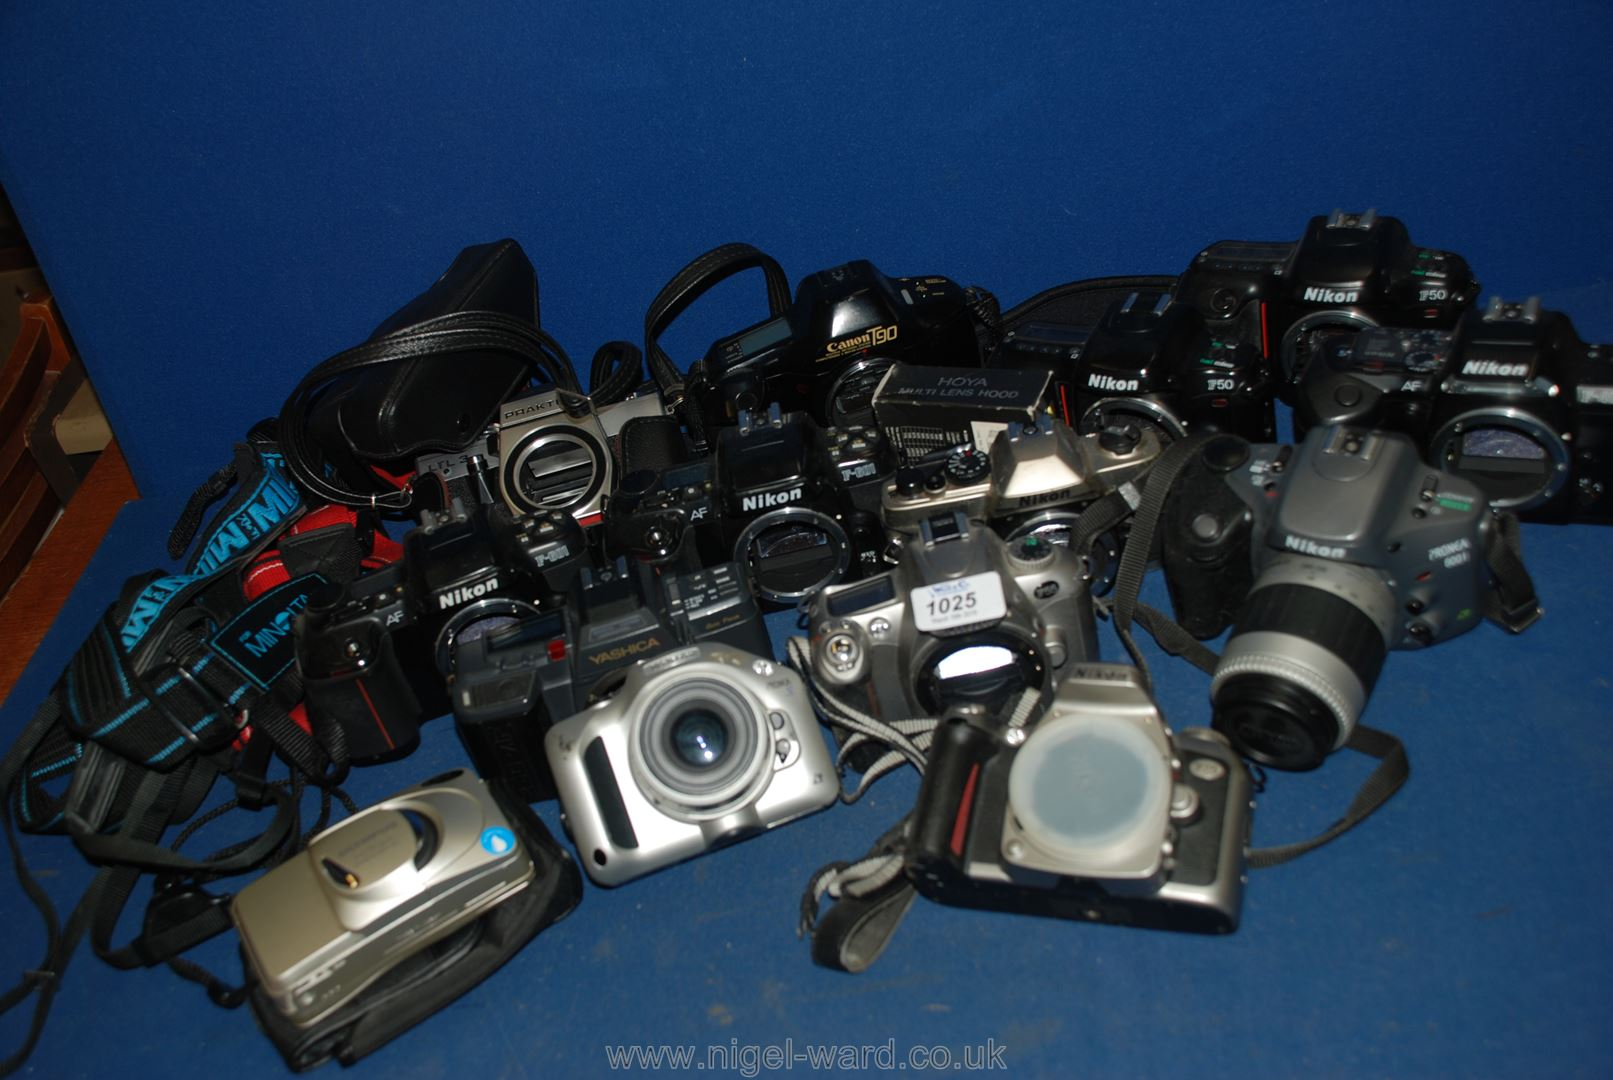 Lot 1025 - A large quantity of SLR film Cameras to include; Minolta, Nikon, Canon, etc.